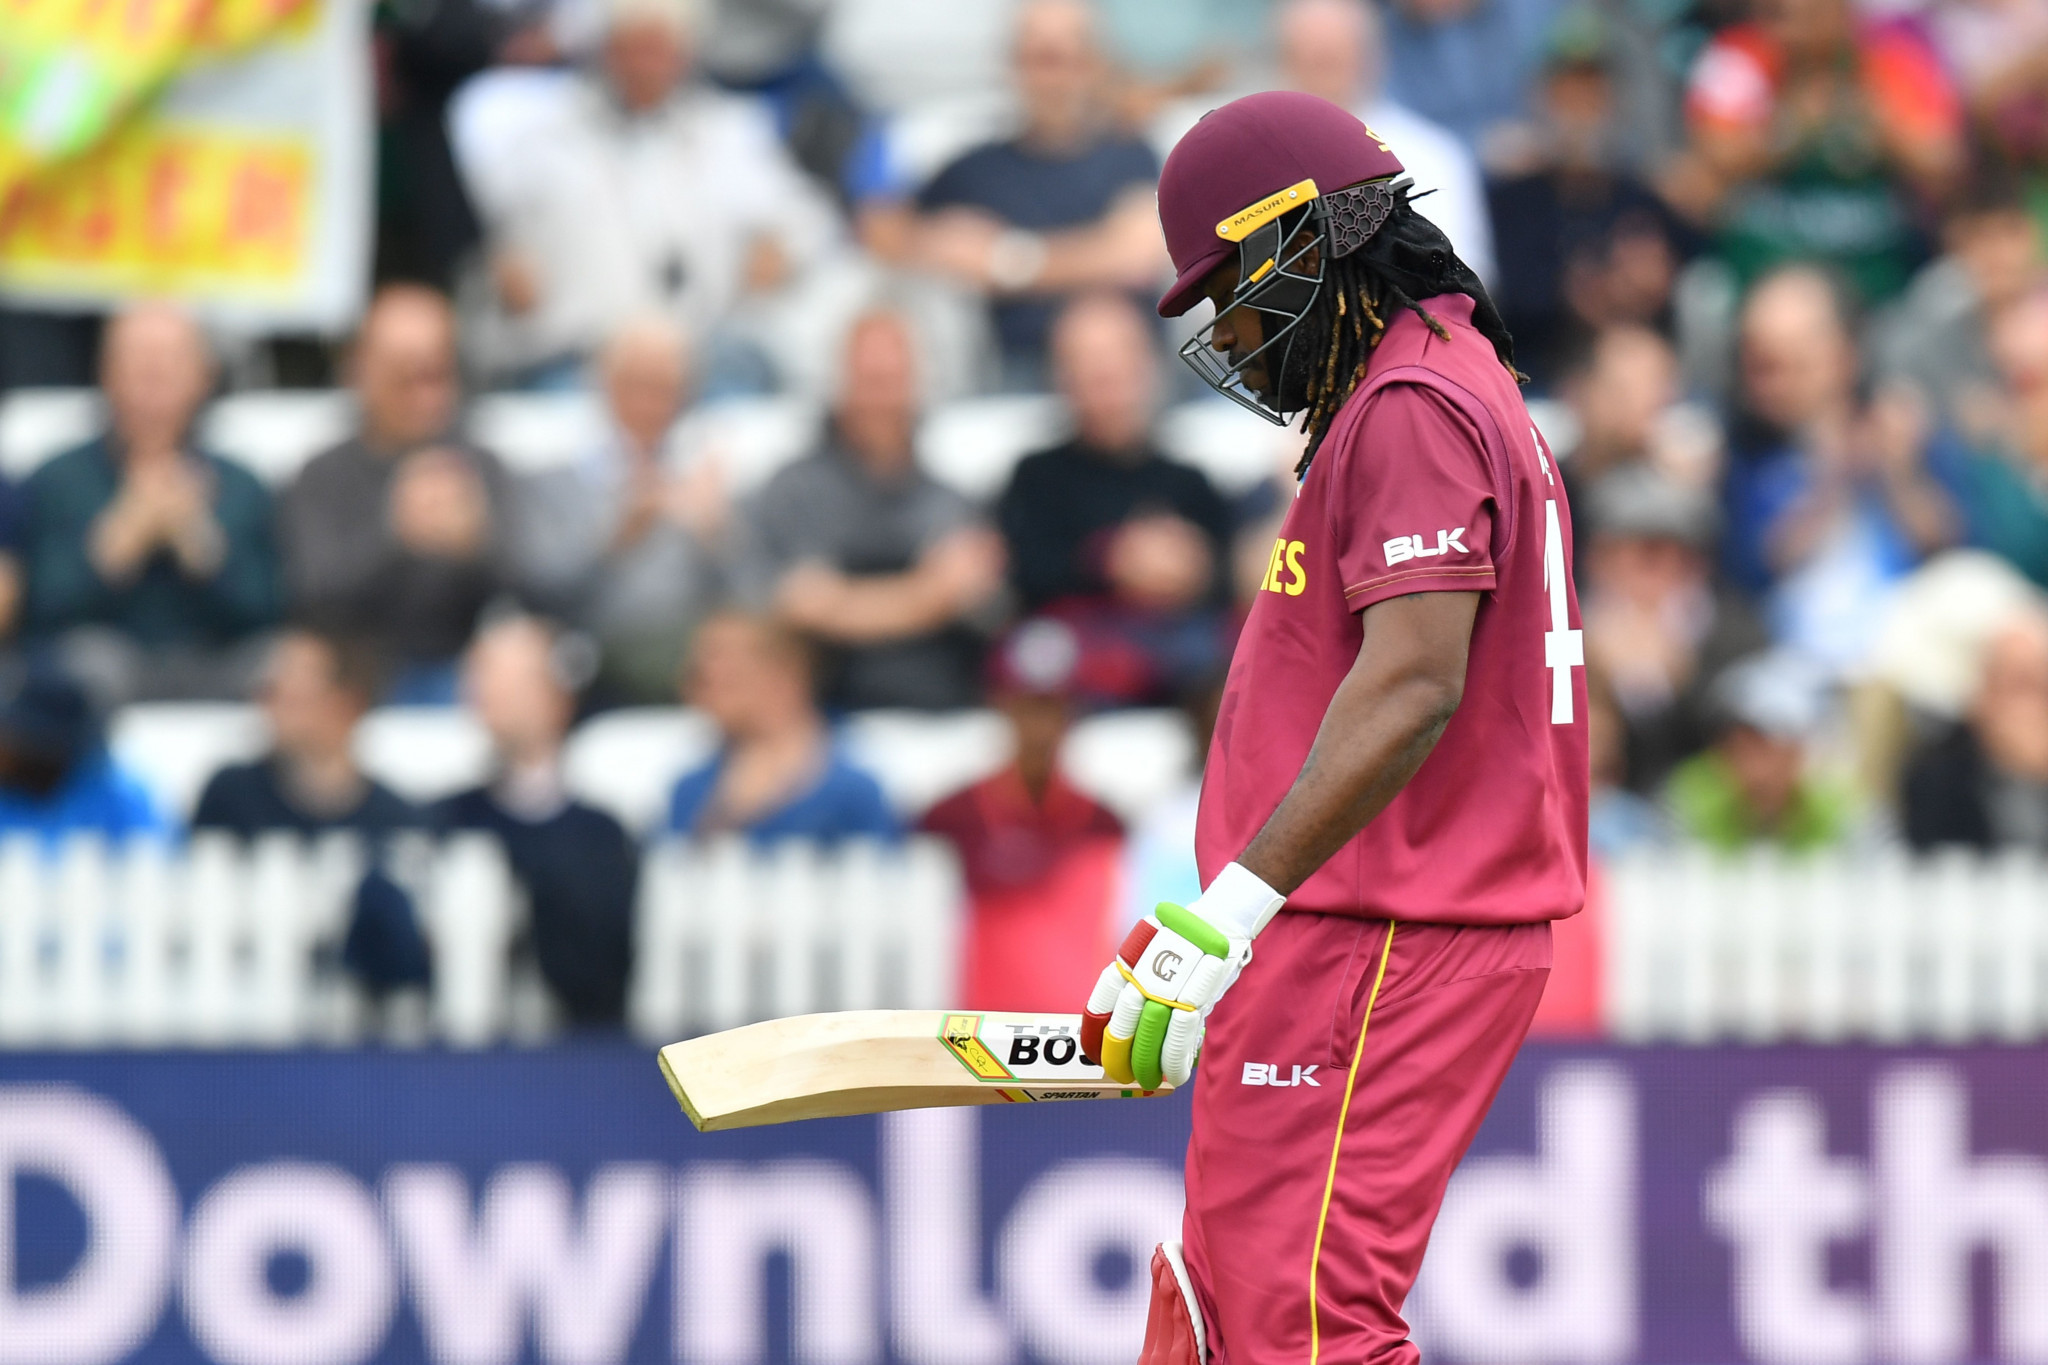 West Indies made 321-8, their fourth-highest World Cup score, despite opener Chris Gayle getting out for a 13-ball duck ©Getty Images